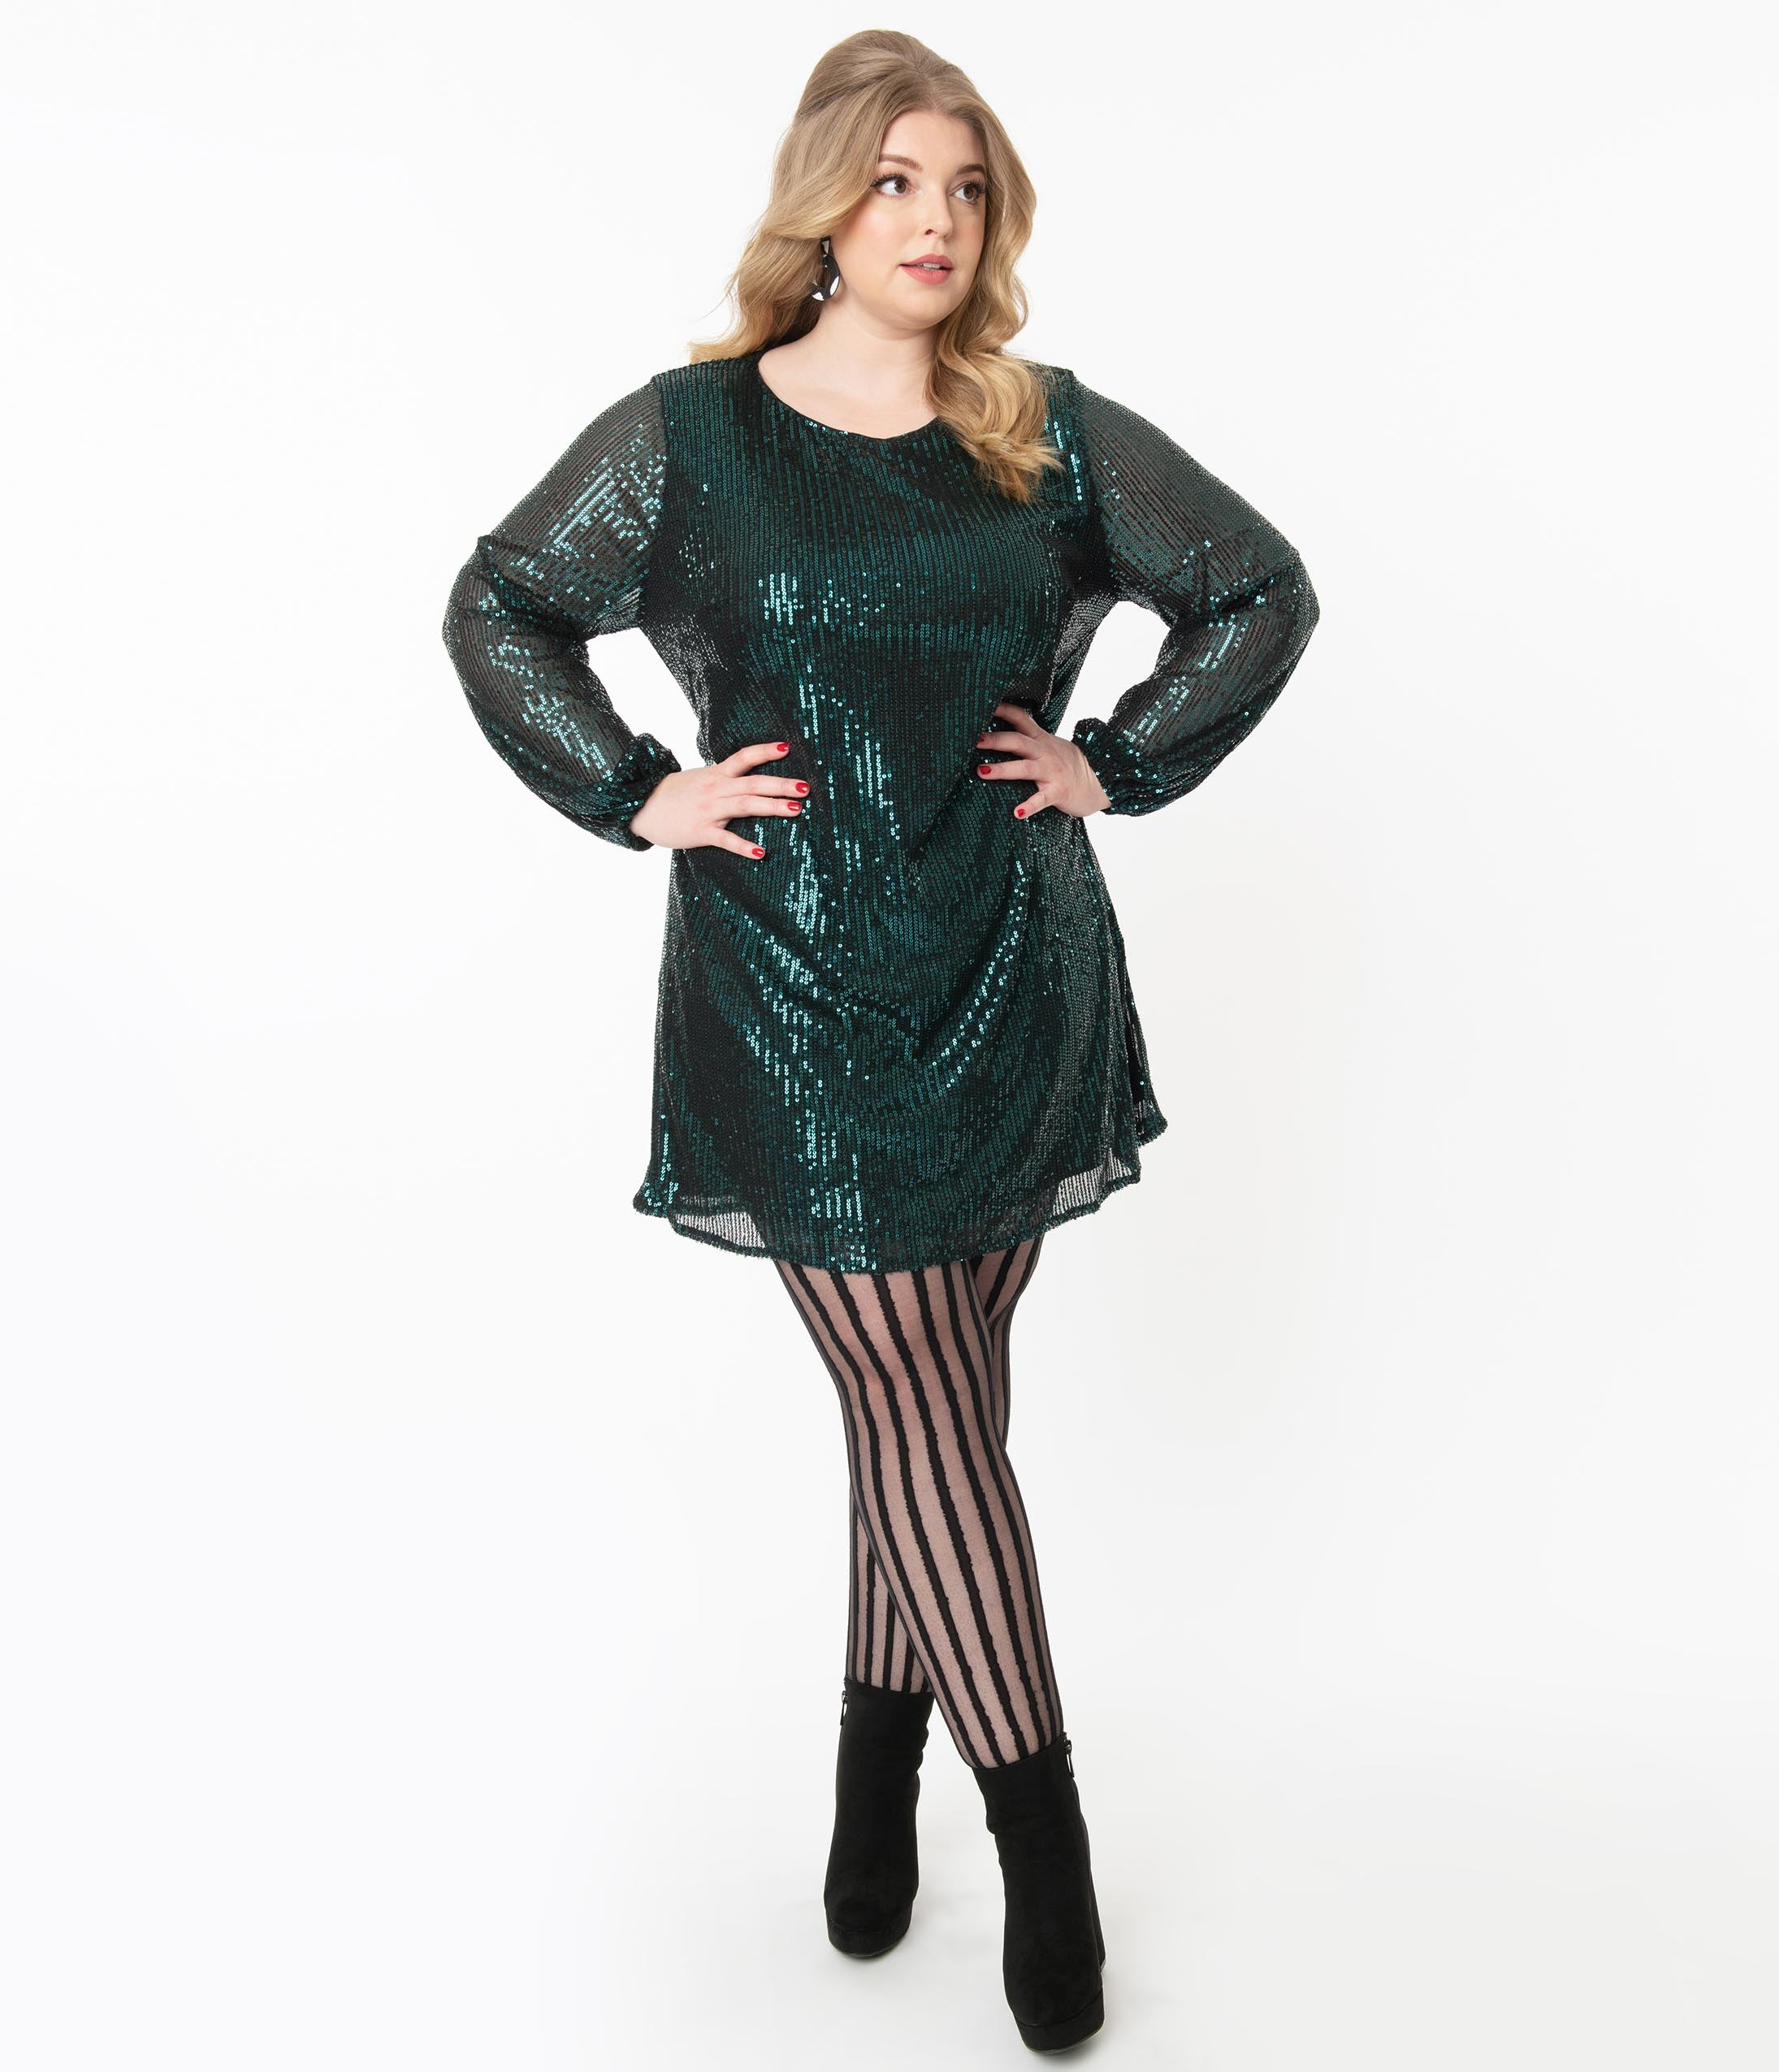 70s Prom, Formal, Evening, Party Dresses Plus Size Dark Teal Sequin Long Sleeve Shift Dress $62.00 AT vintagedancer.com